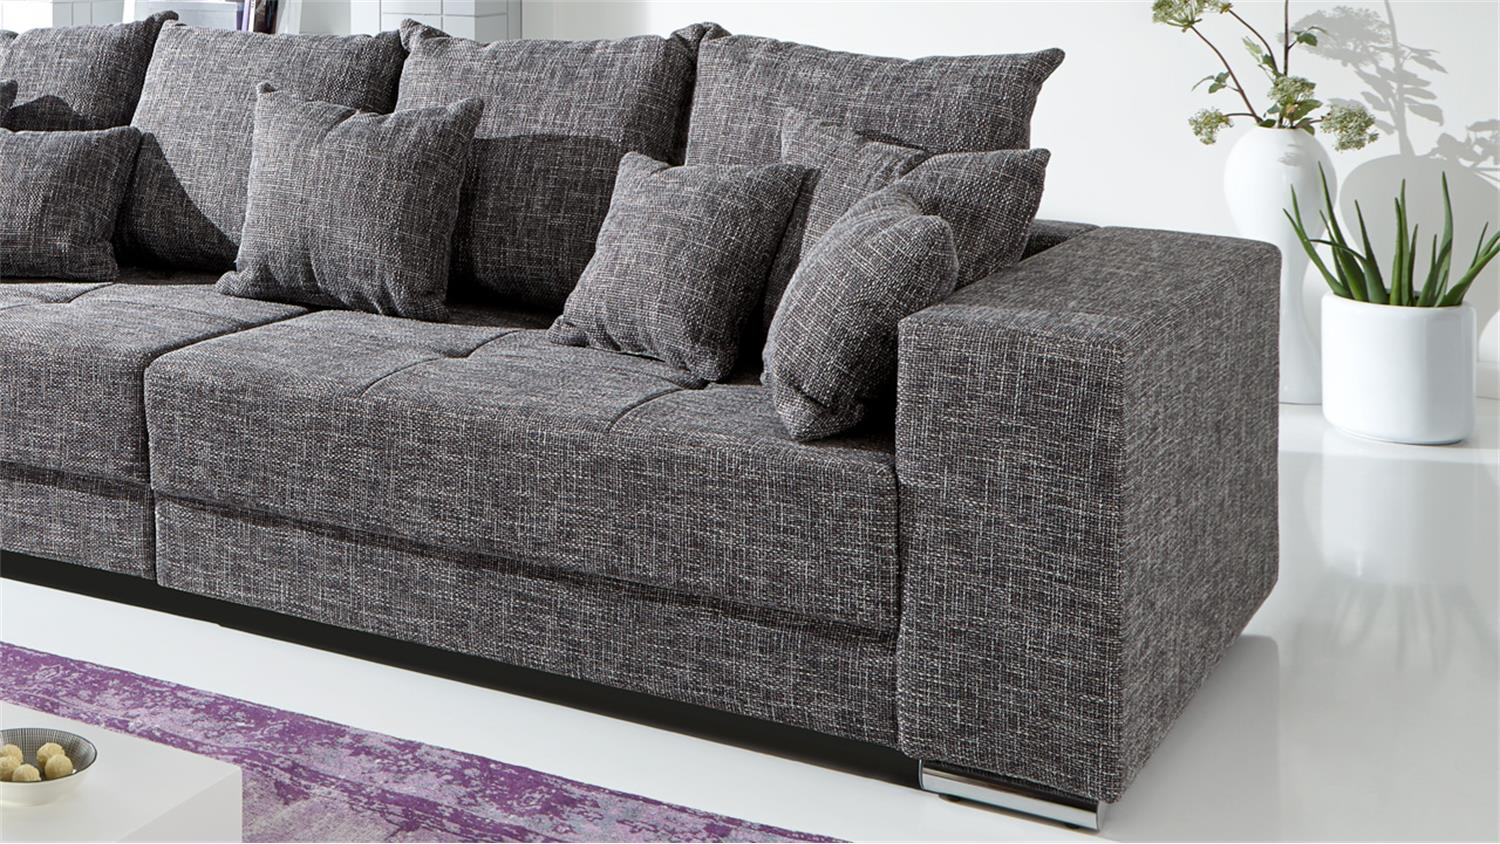 Webstoff Sofa Webstoff Best Webstoff Kariert Pink With Webstoff Simple